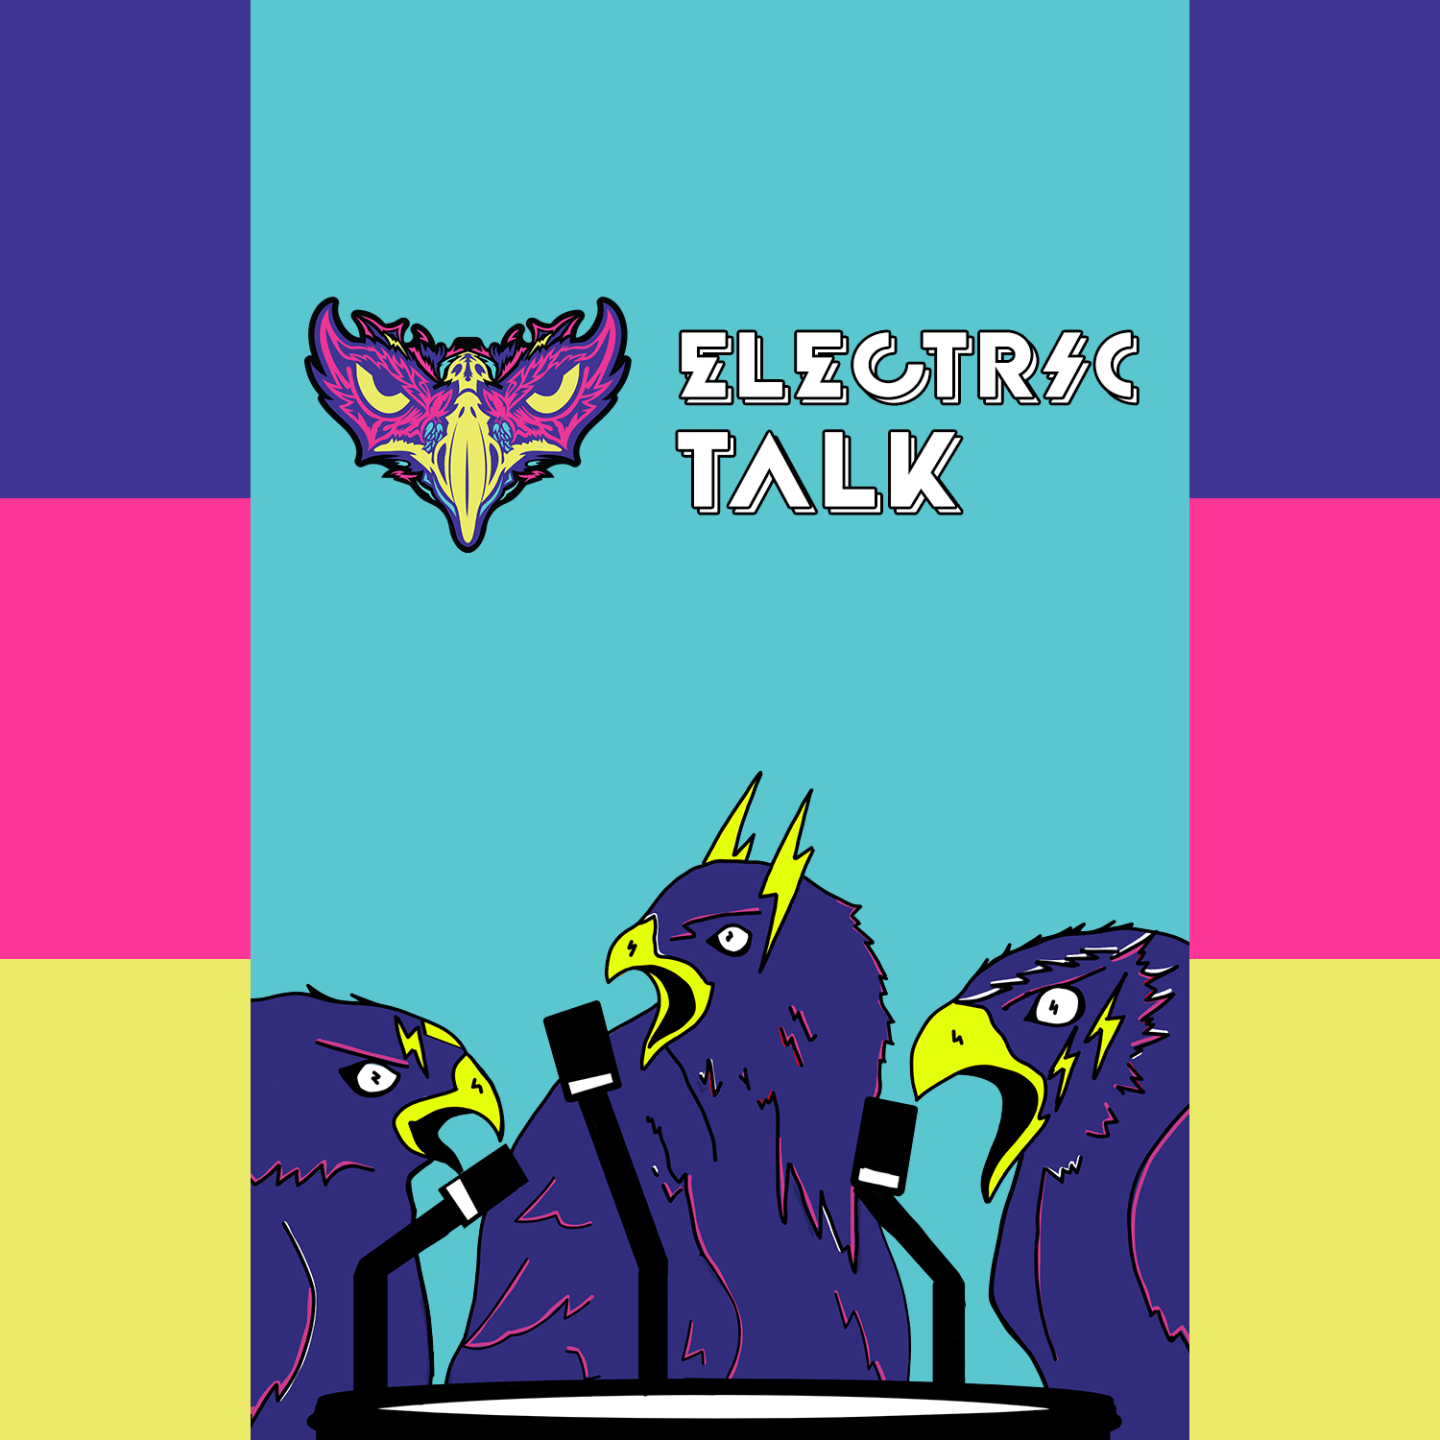 Electric Talk